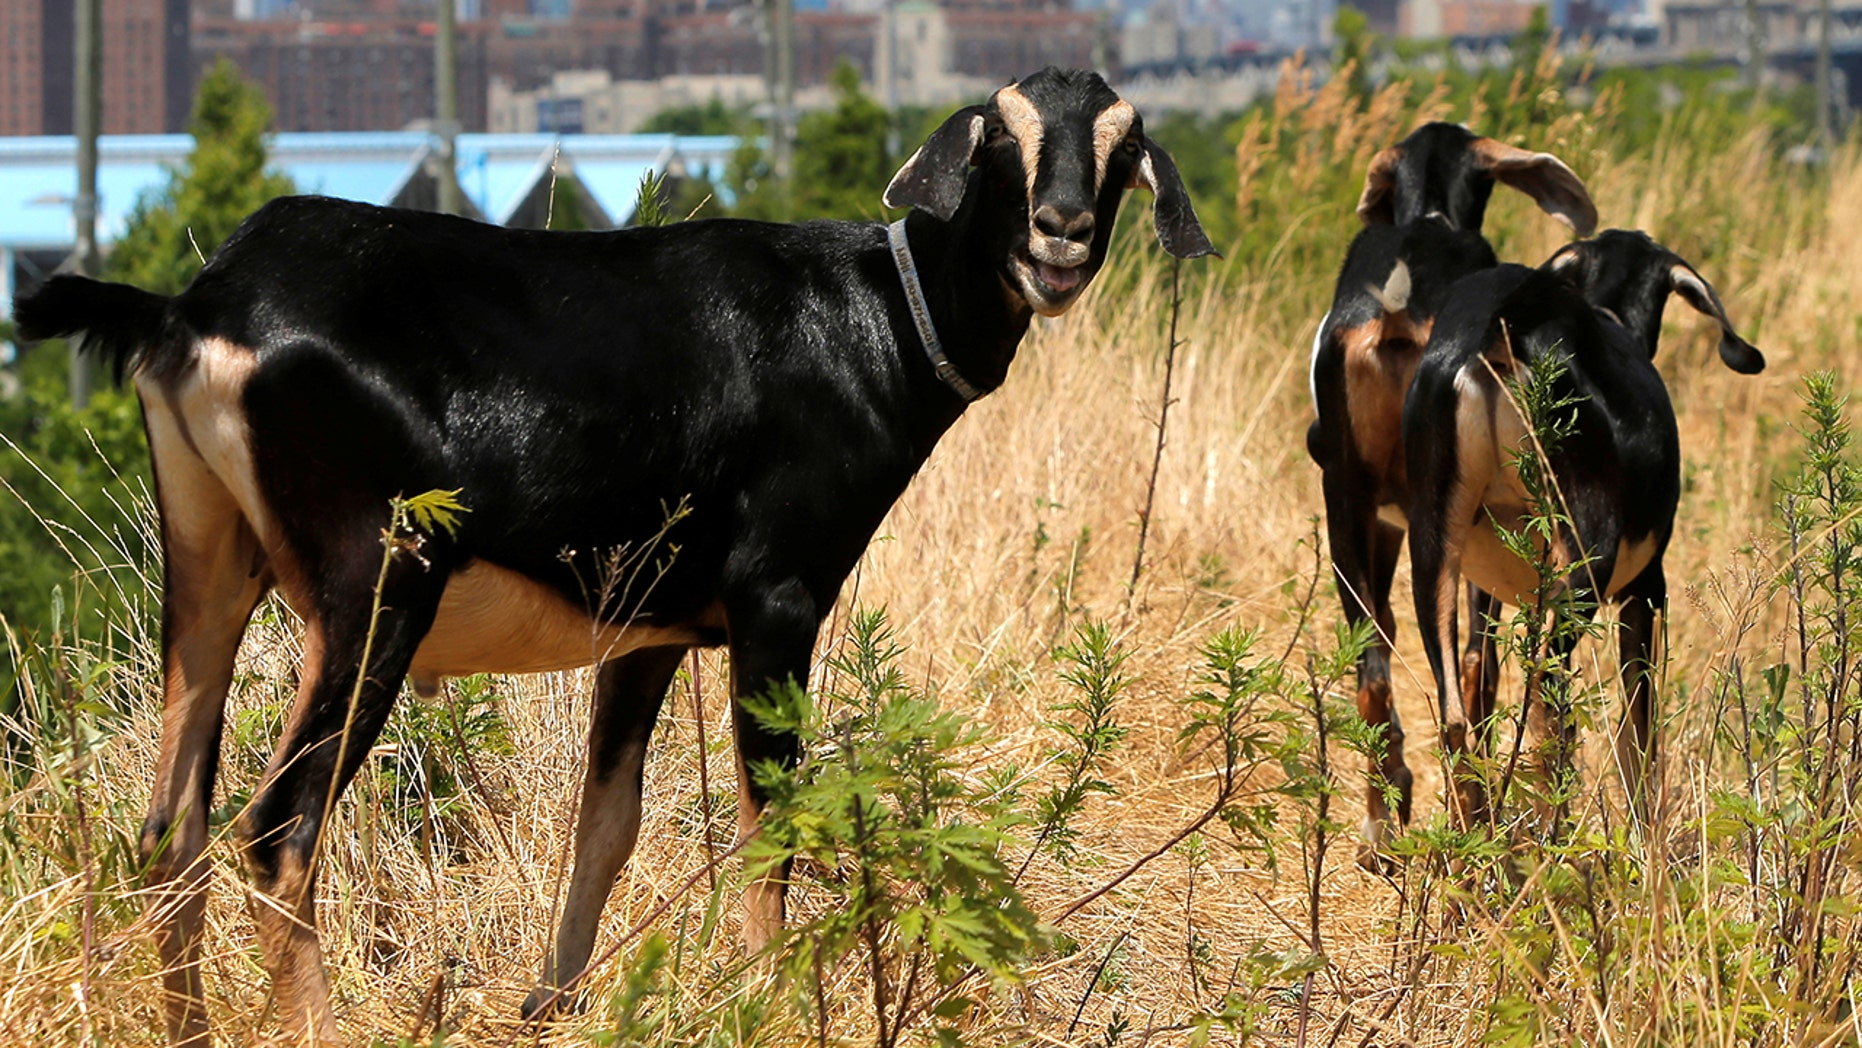 A decapitated goat discovered in a storage bin near railroad tracks in New Jersey on Monday sparked an investigation.